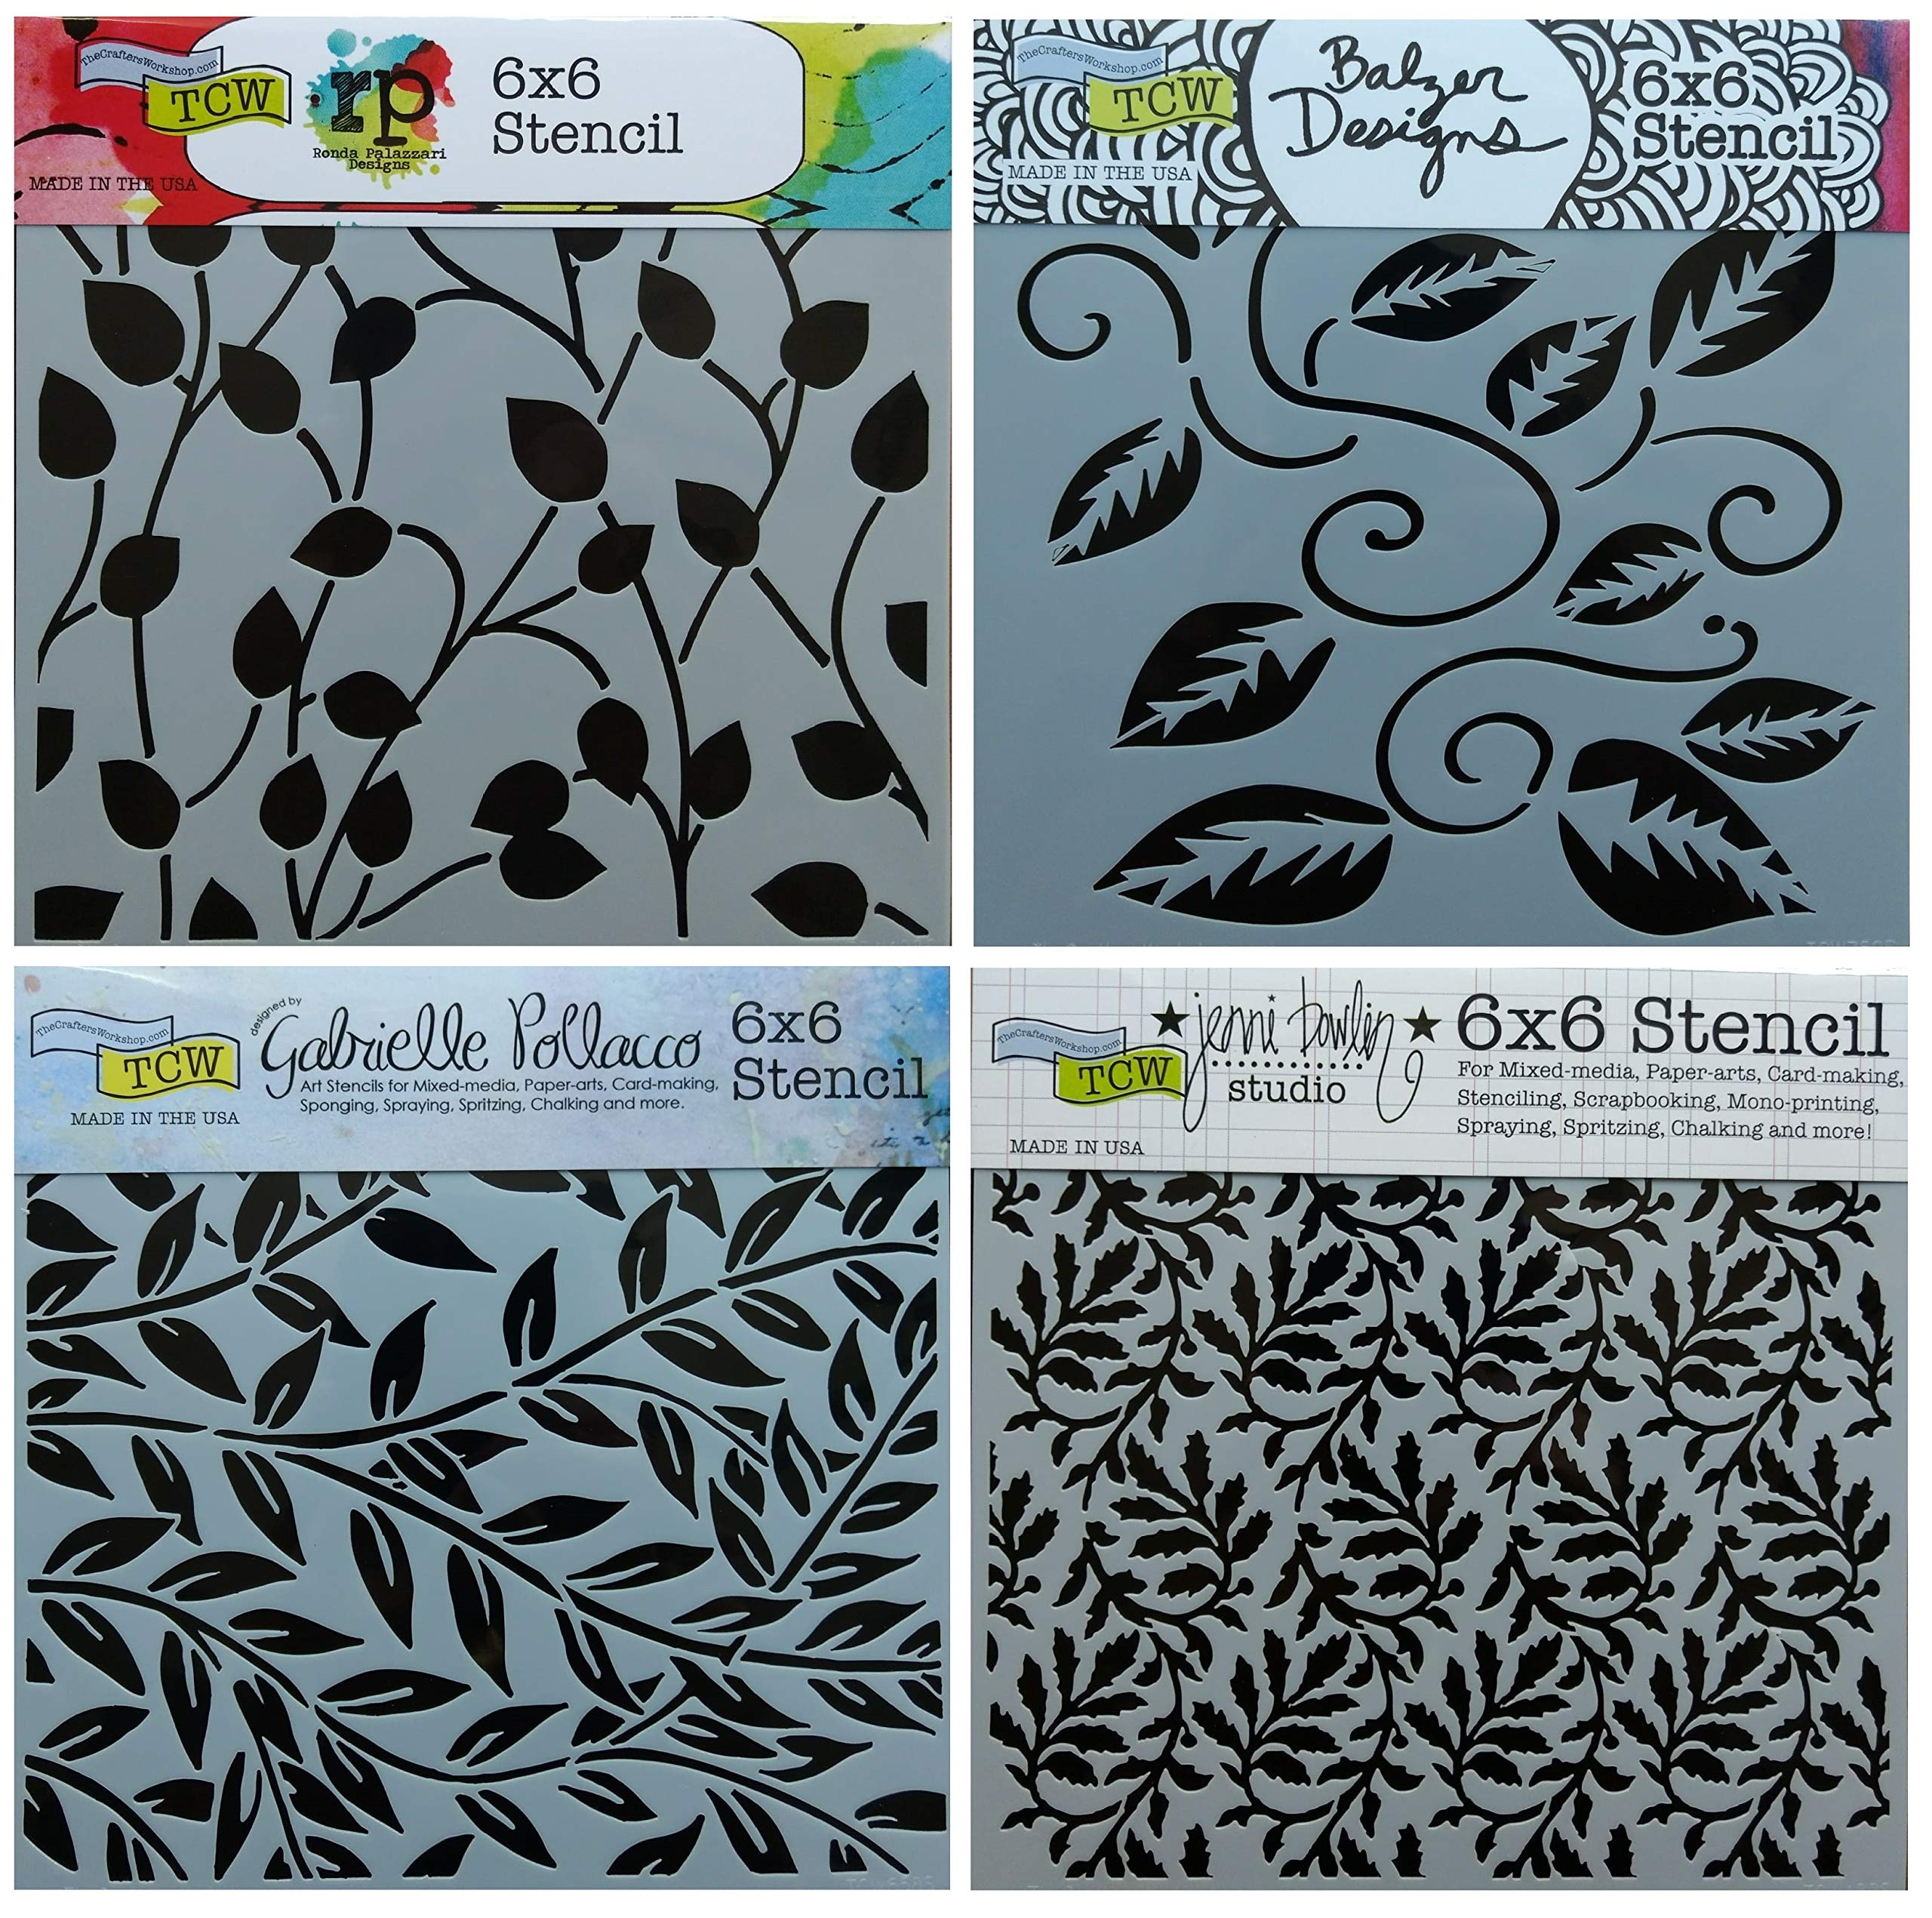 4 Crafters Workshop Stencils   Vine, Vineyard, Leaf, Climbing Vines Designs   Mixed Media Stencils Set Includes 6 Inch x 6 Inch Templates for Painting, Arts, Card Making, Journaling, Scrapbooking